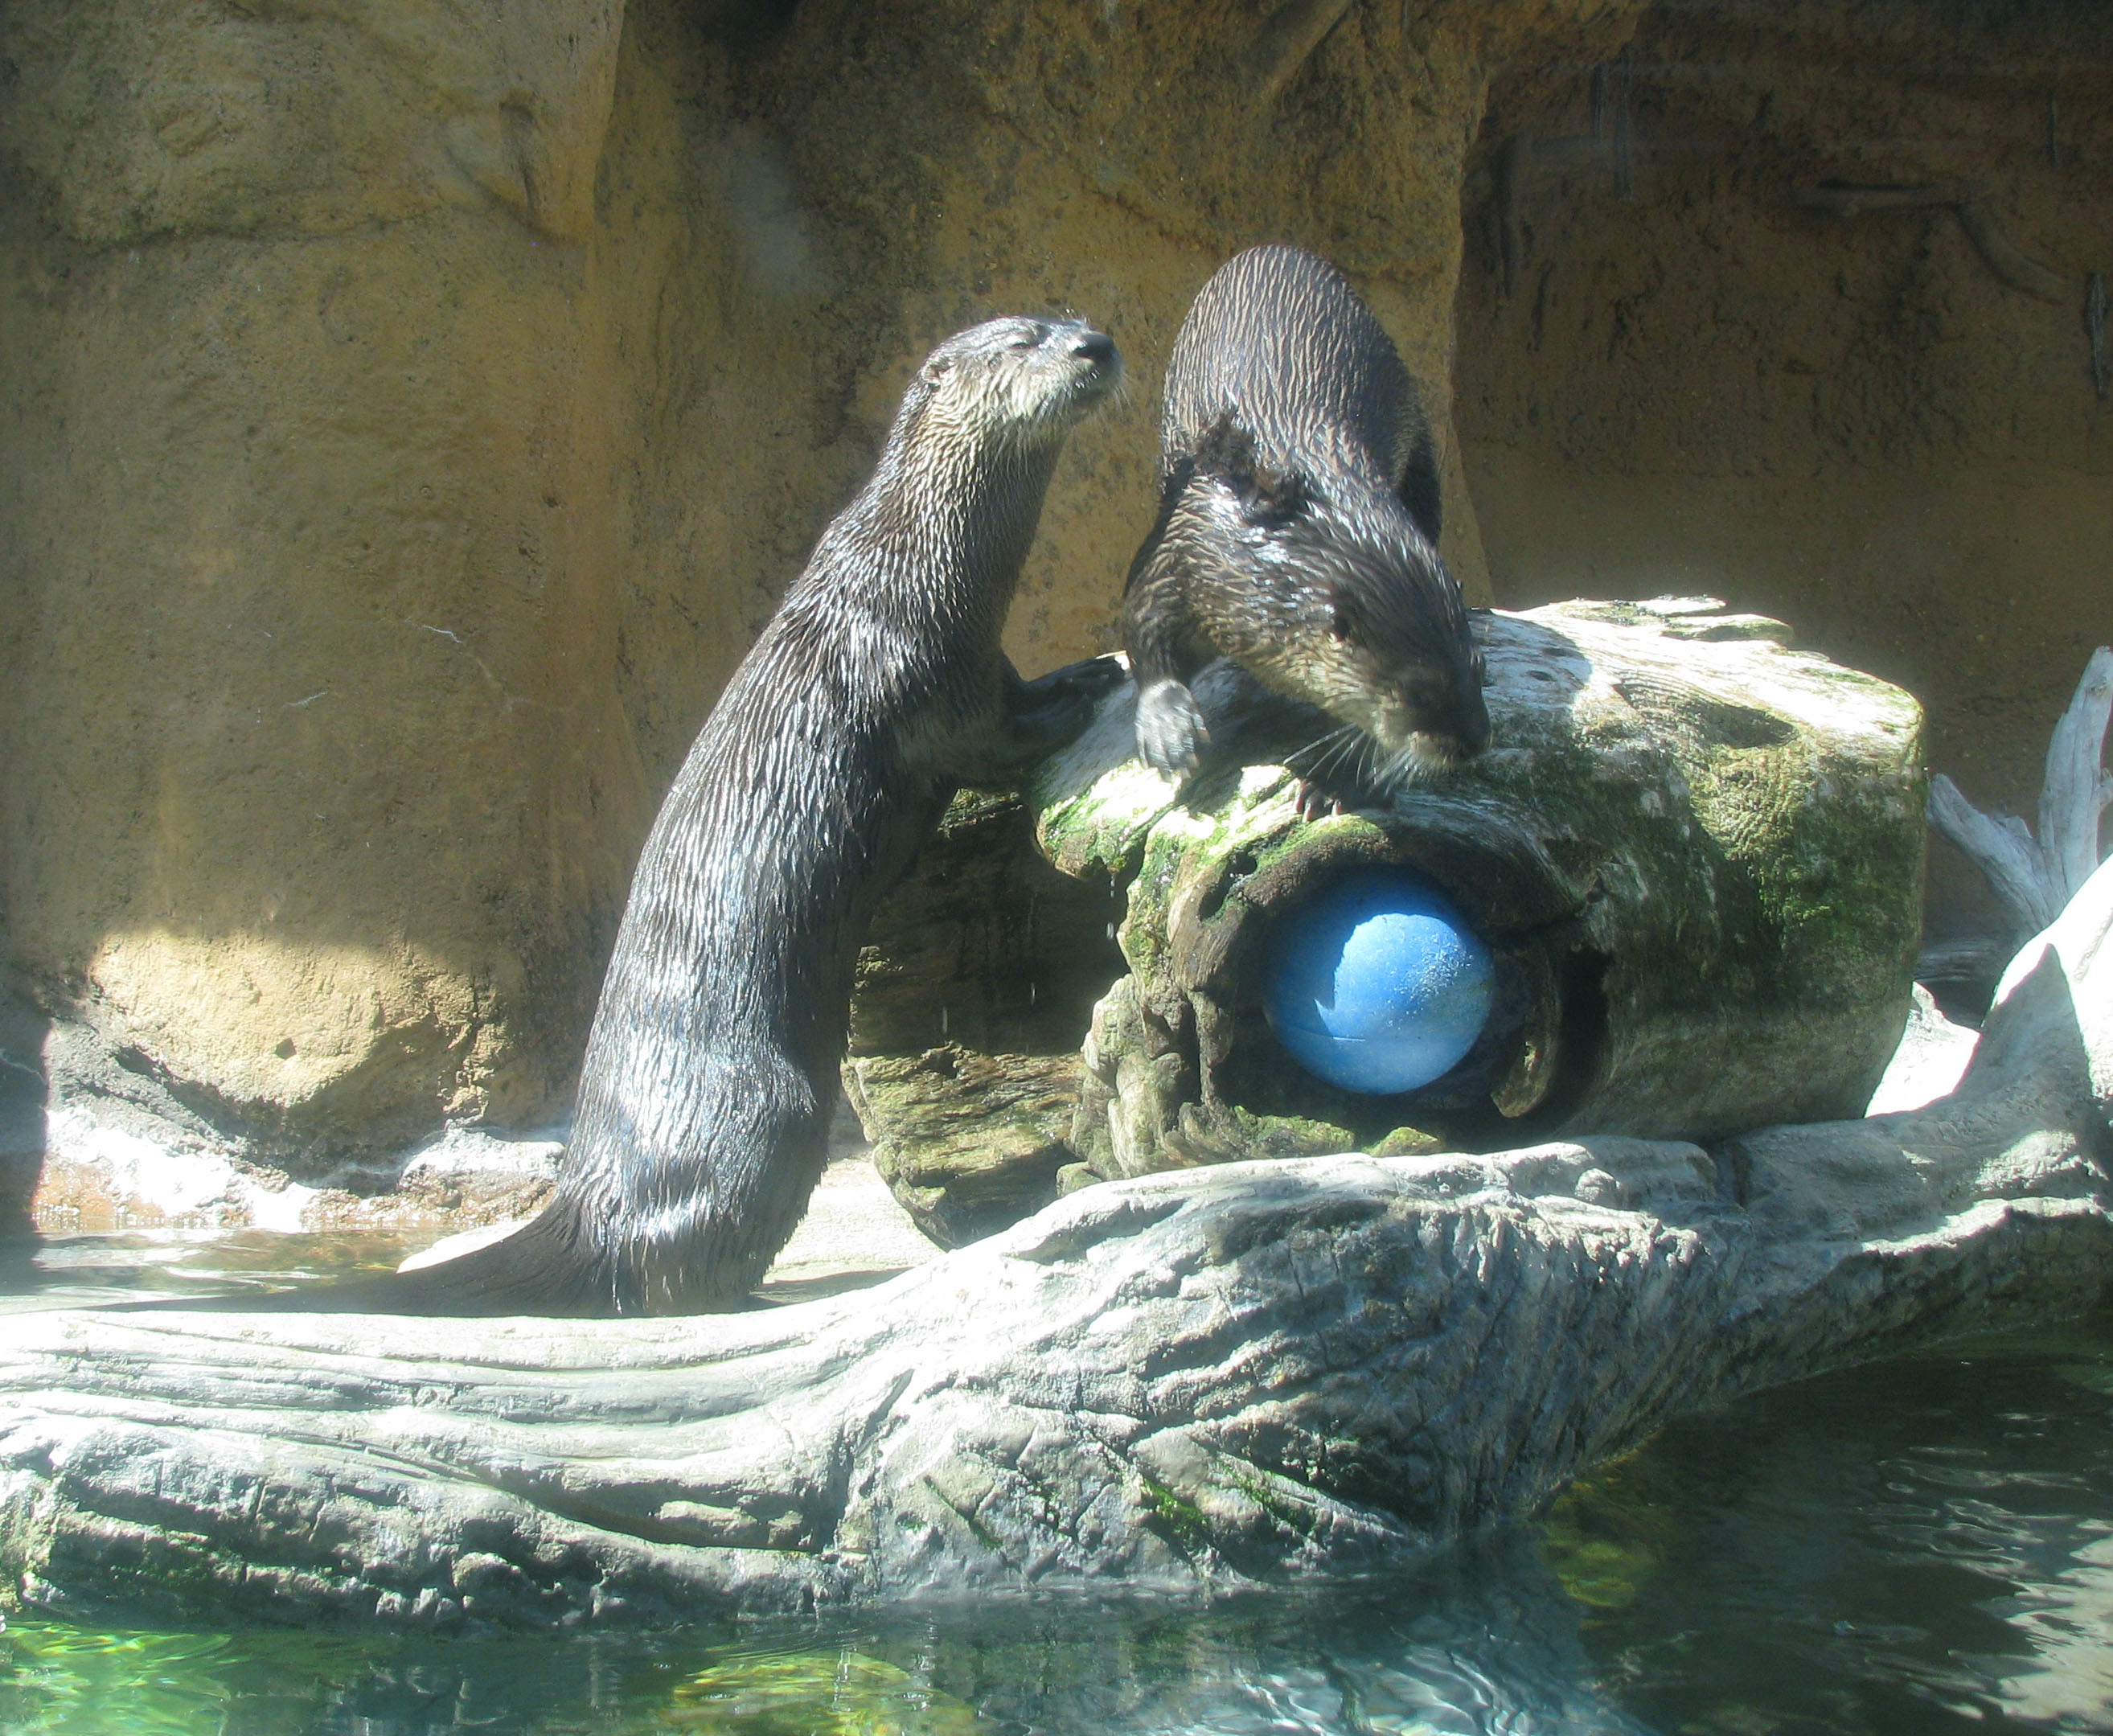 Photo Calvert Marine Museum - Otters in habitat